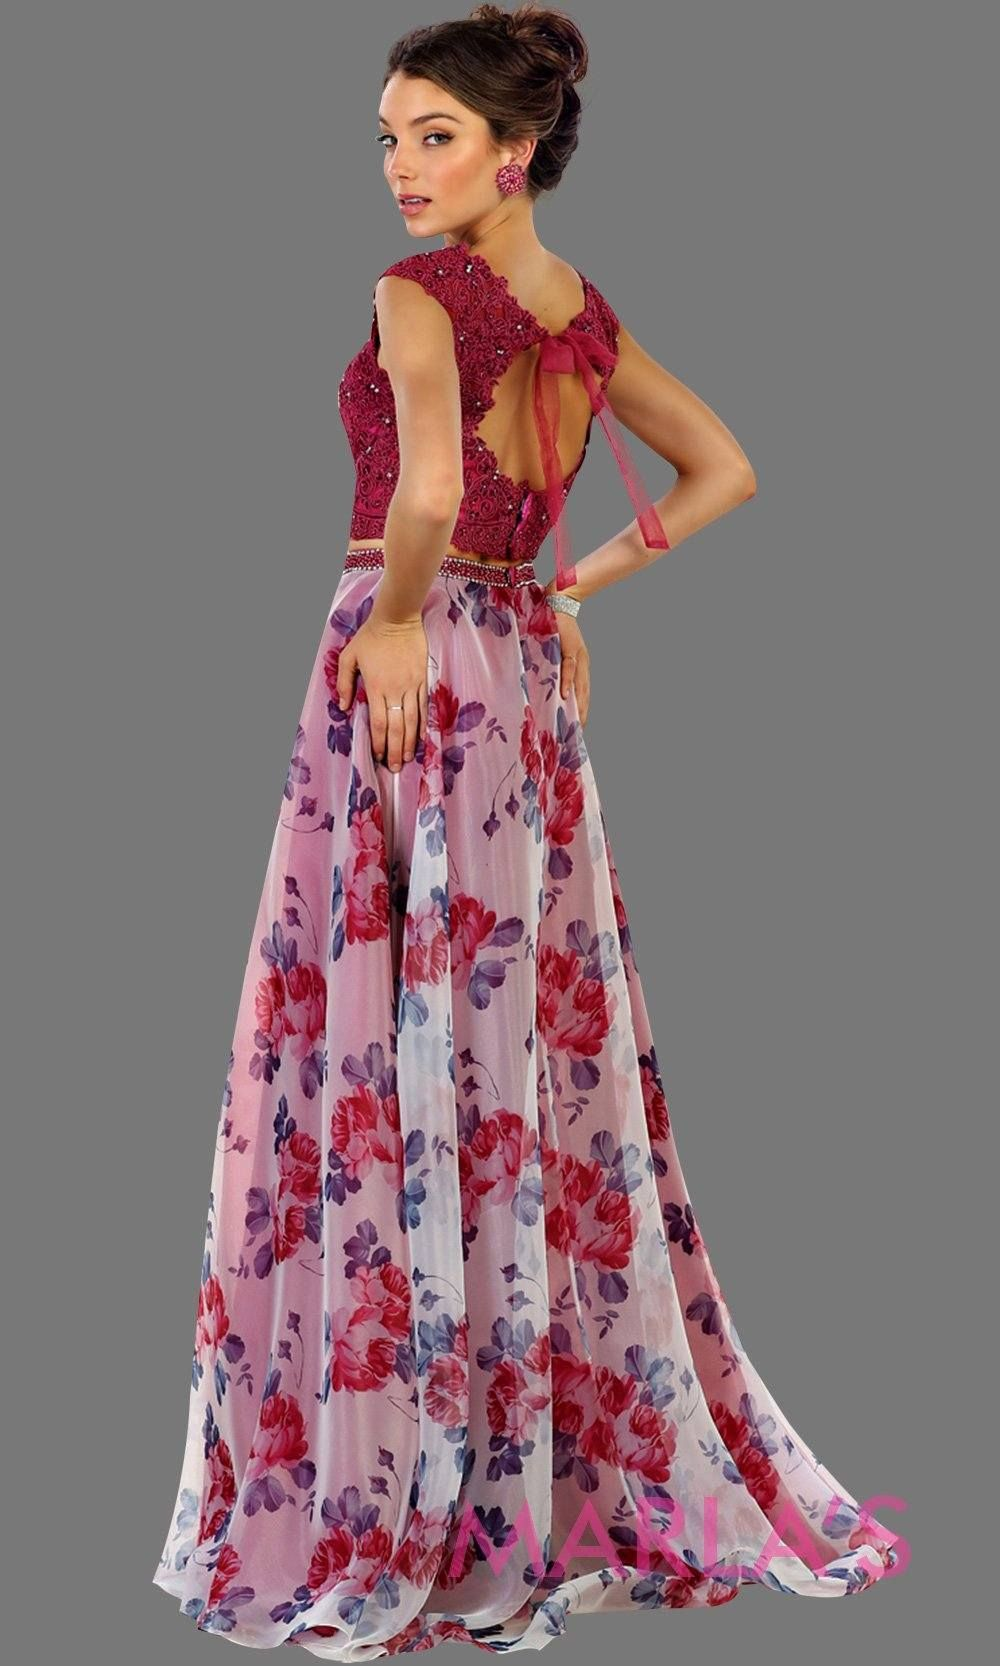 0ed6c2764b9 Long two piece hot pink dress with floral skirt and lace top. It has a flowy  skirt. This flower print dress is perfect for prom